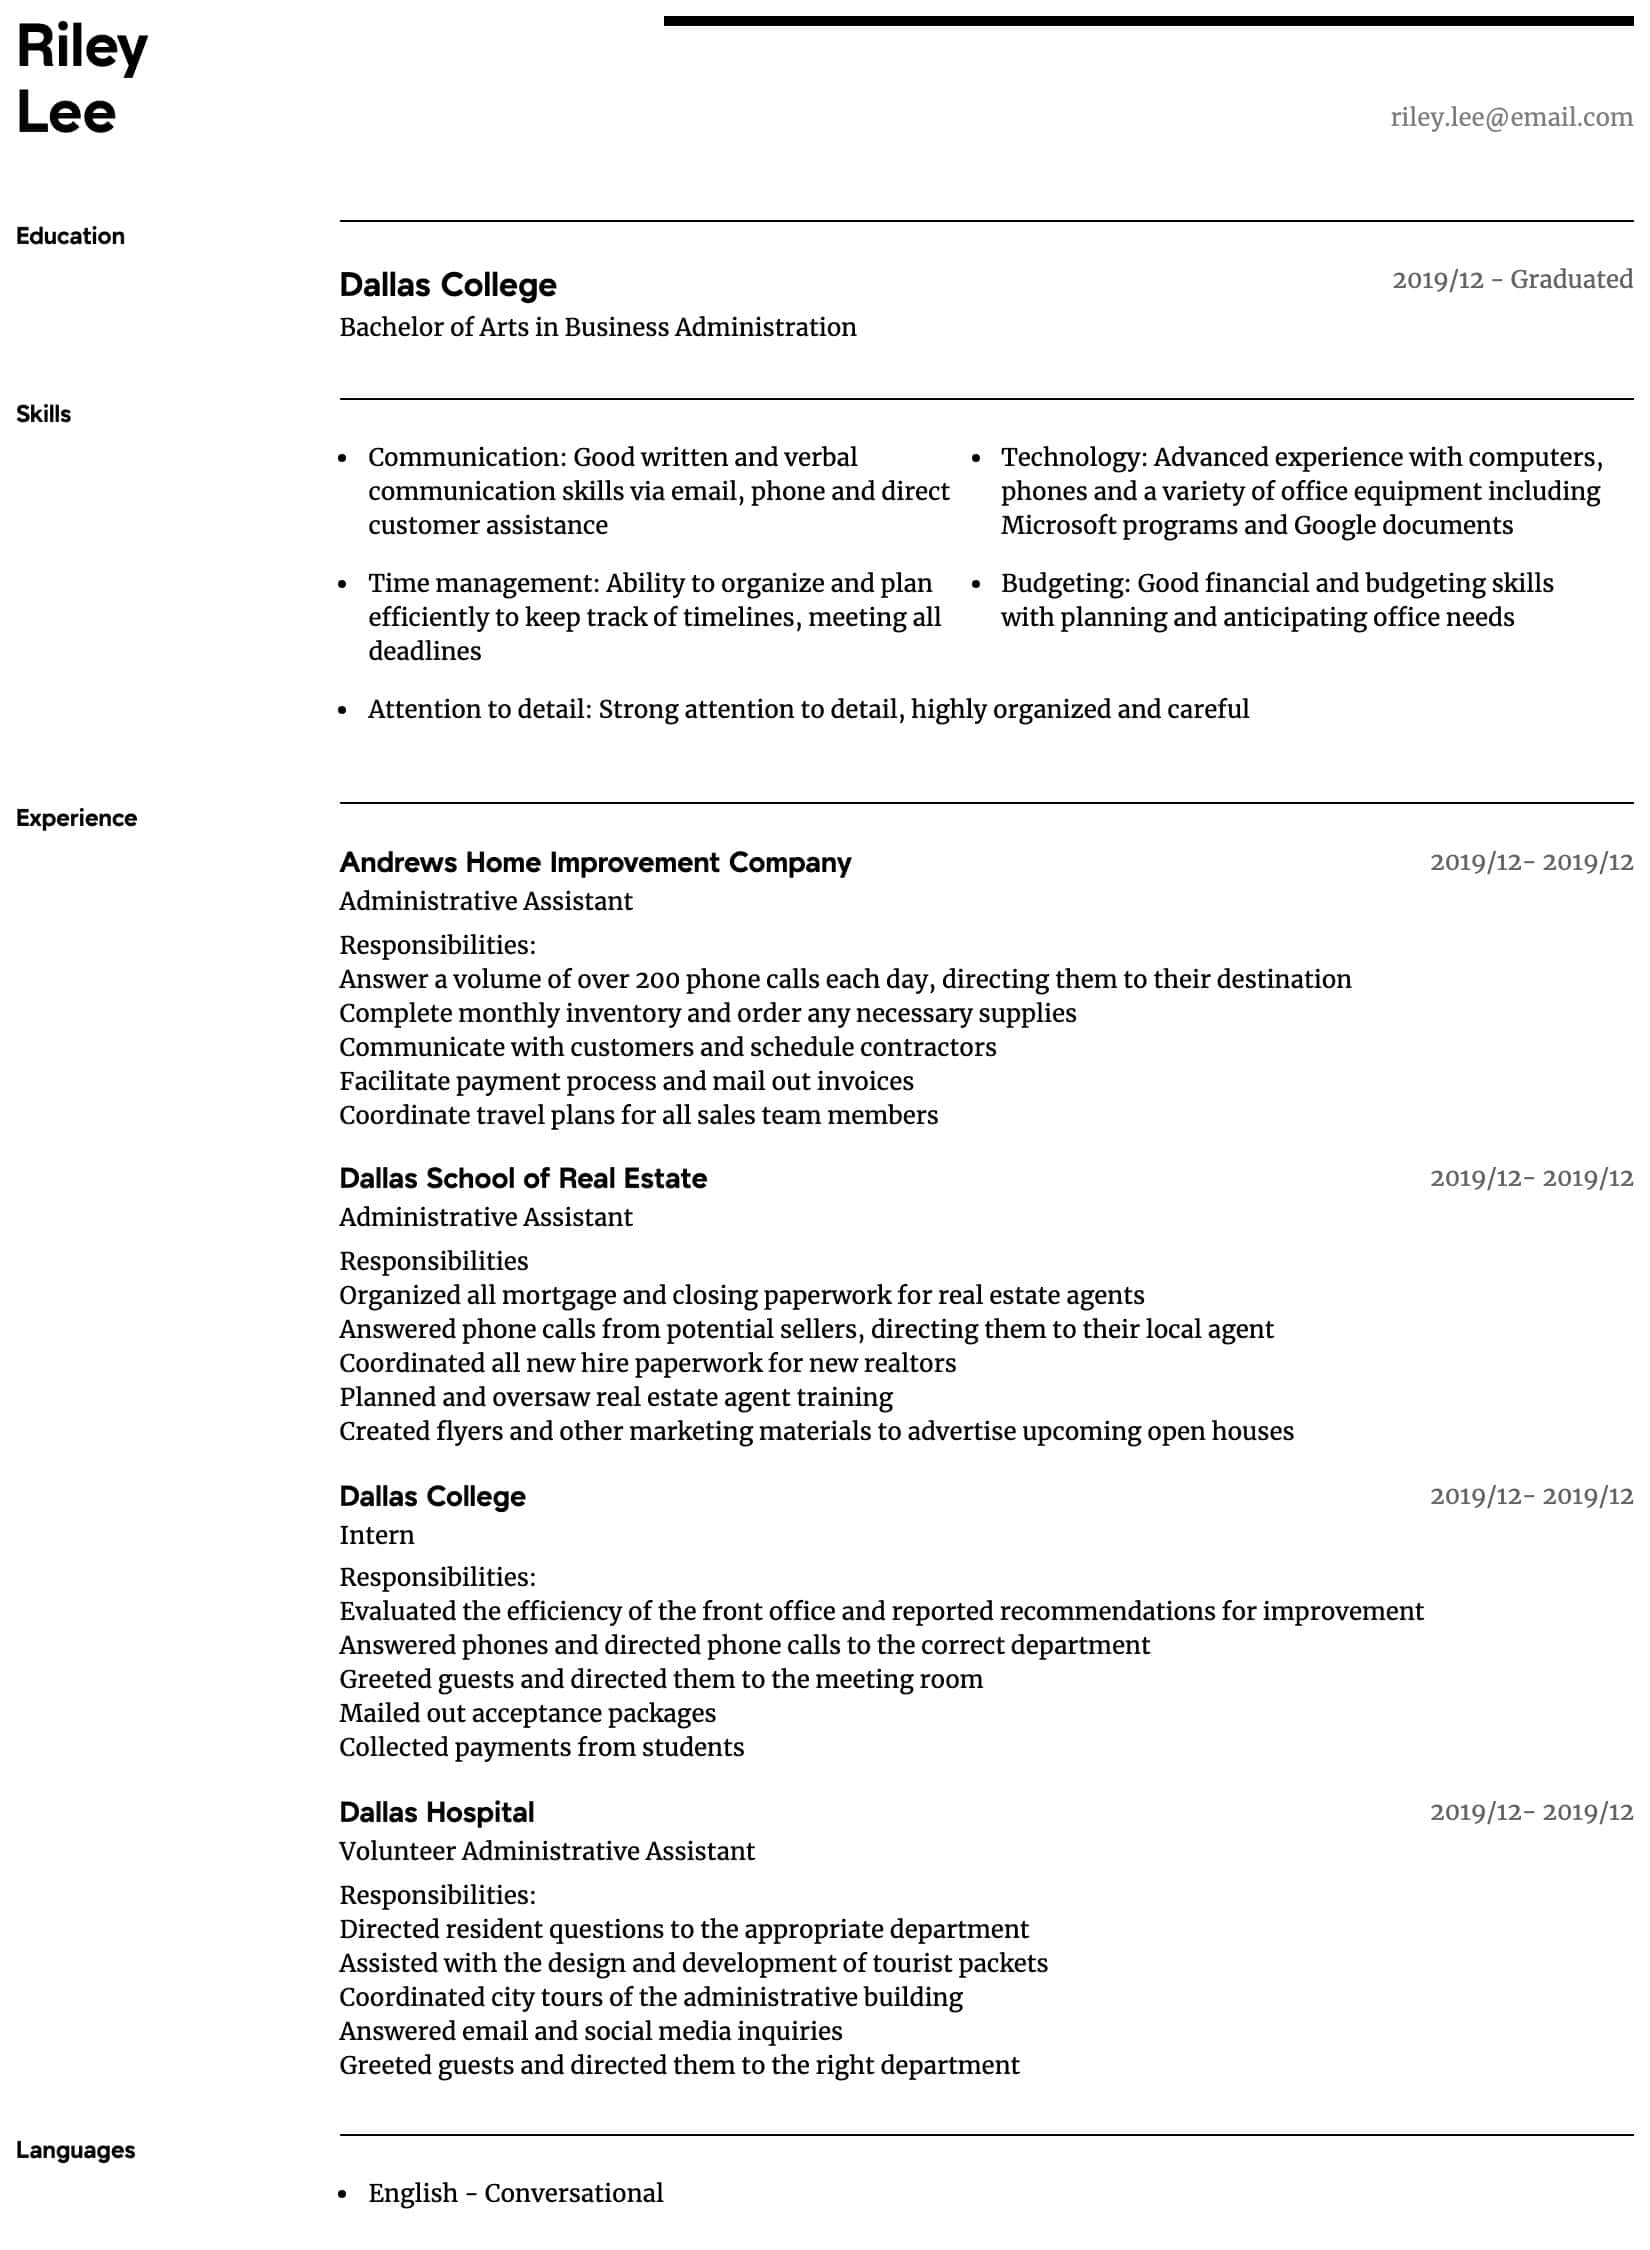 administrative assistant resume samples all experience levels budgeting skills for Resume Budgeting Skills For Resume